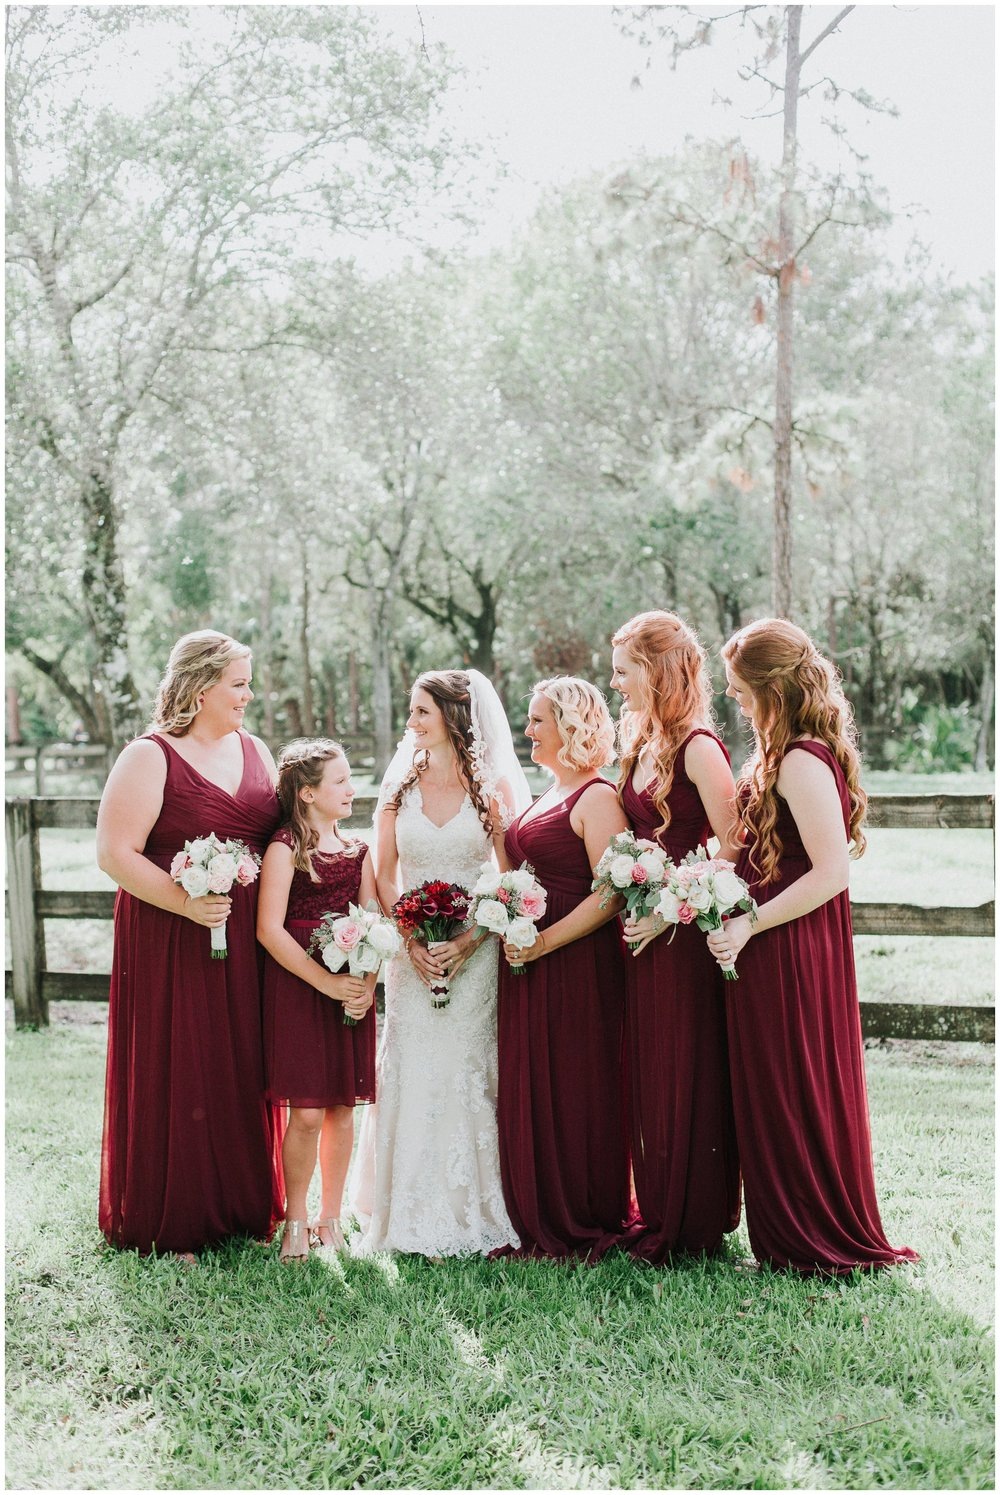 Even the burgundy bridesmaid's dresses were the perfect fall tones.